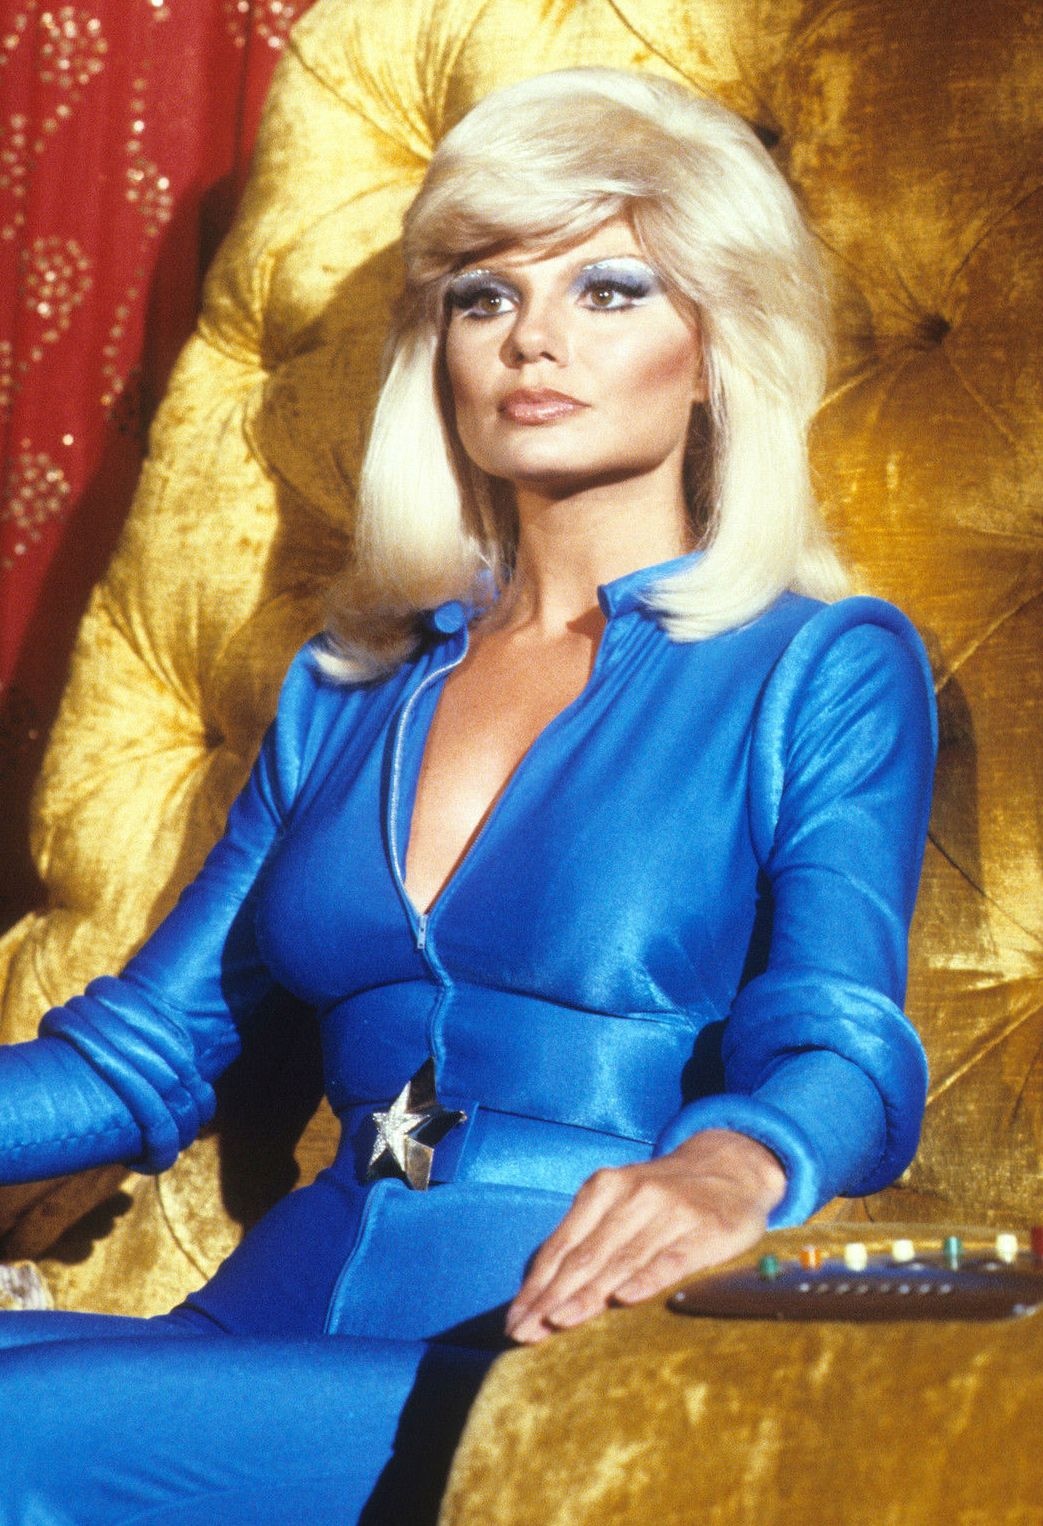 vintageruminance:Loni Anderson | Life in the 1970s | Pinterest | Celebs, Actresses and Movie stars